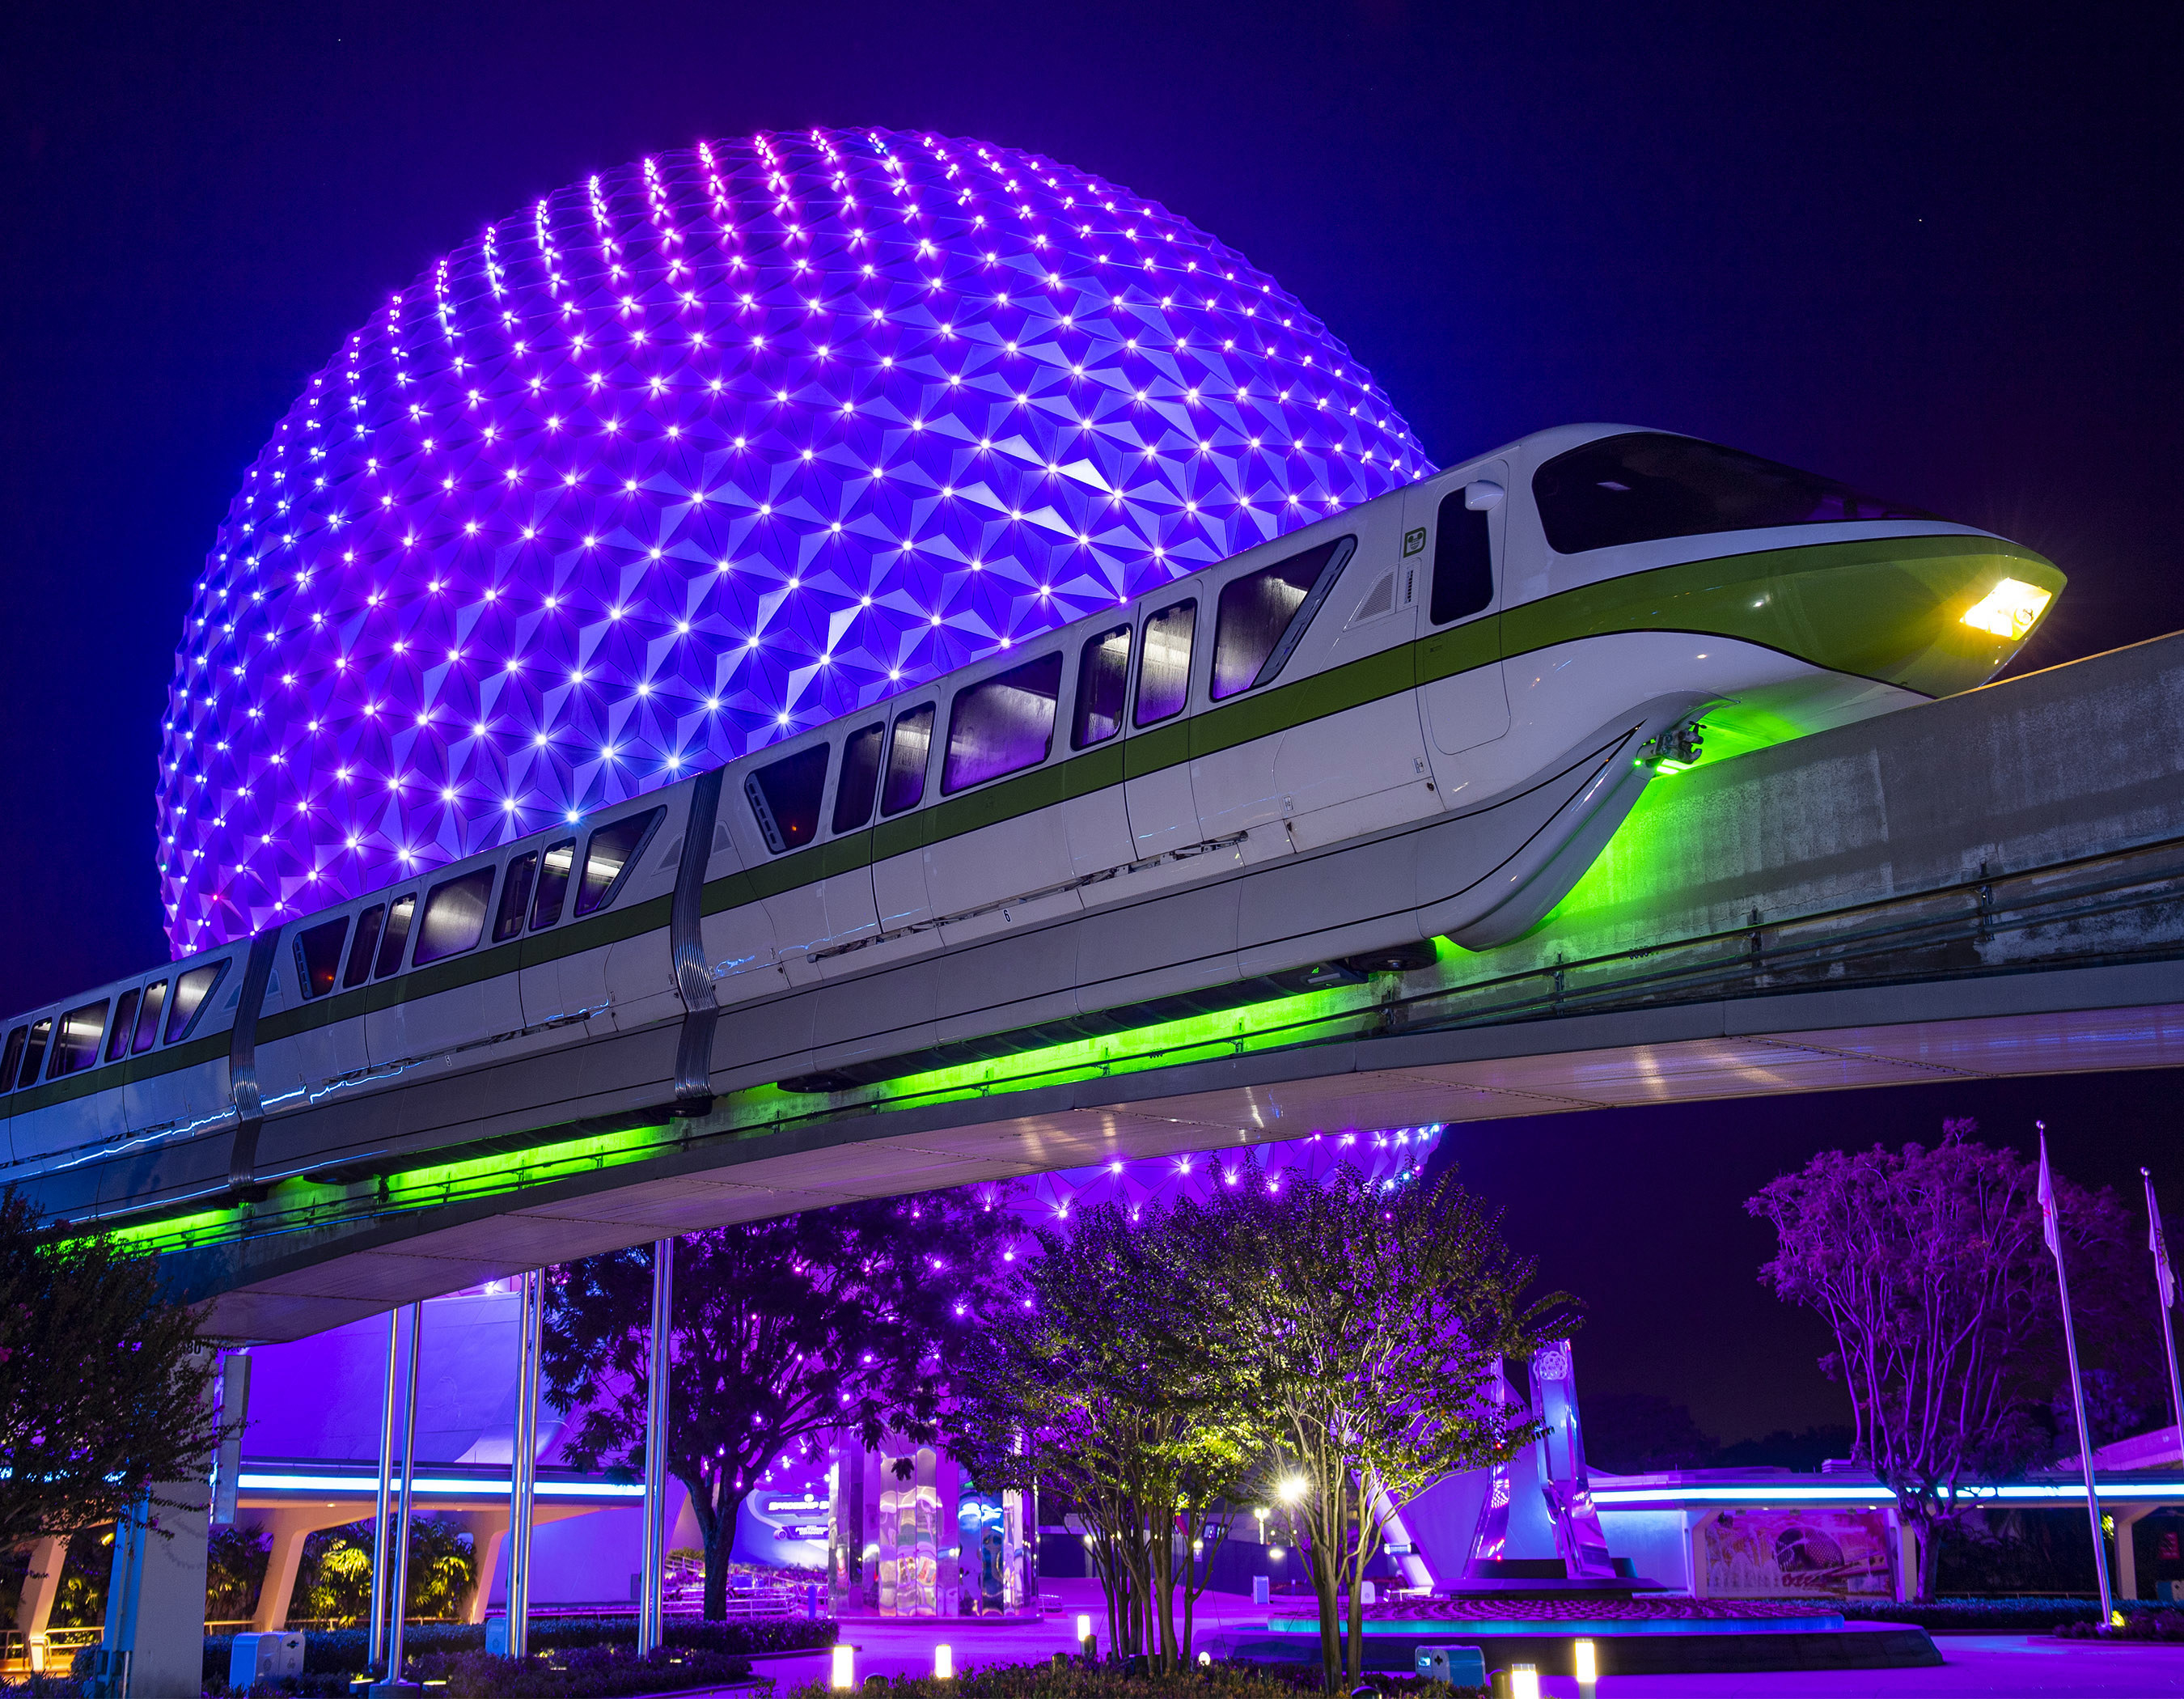 The monorail going in front of Epcot with the underside glowing